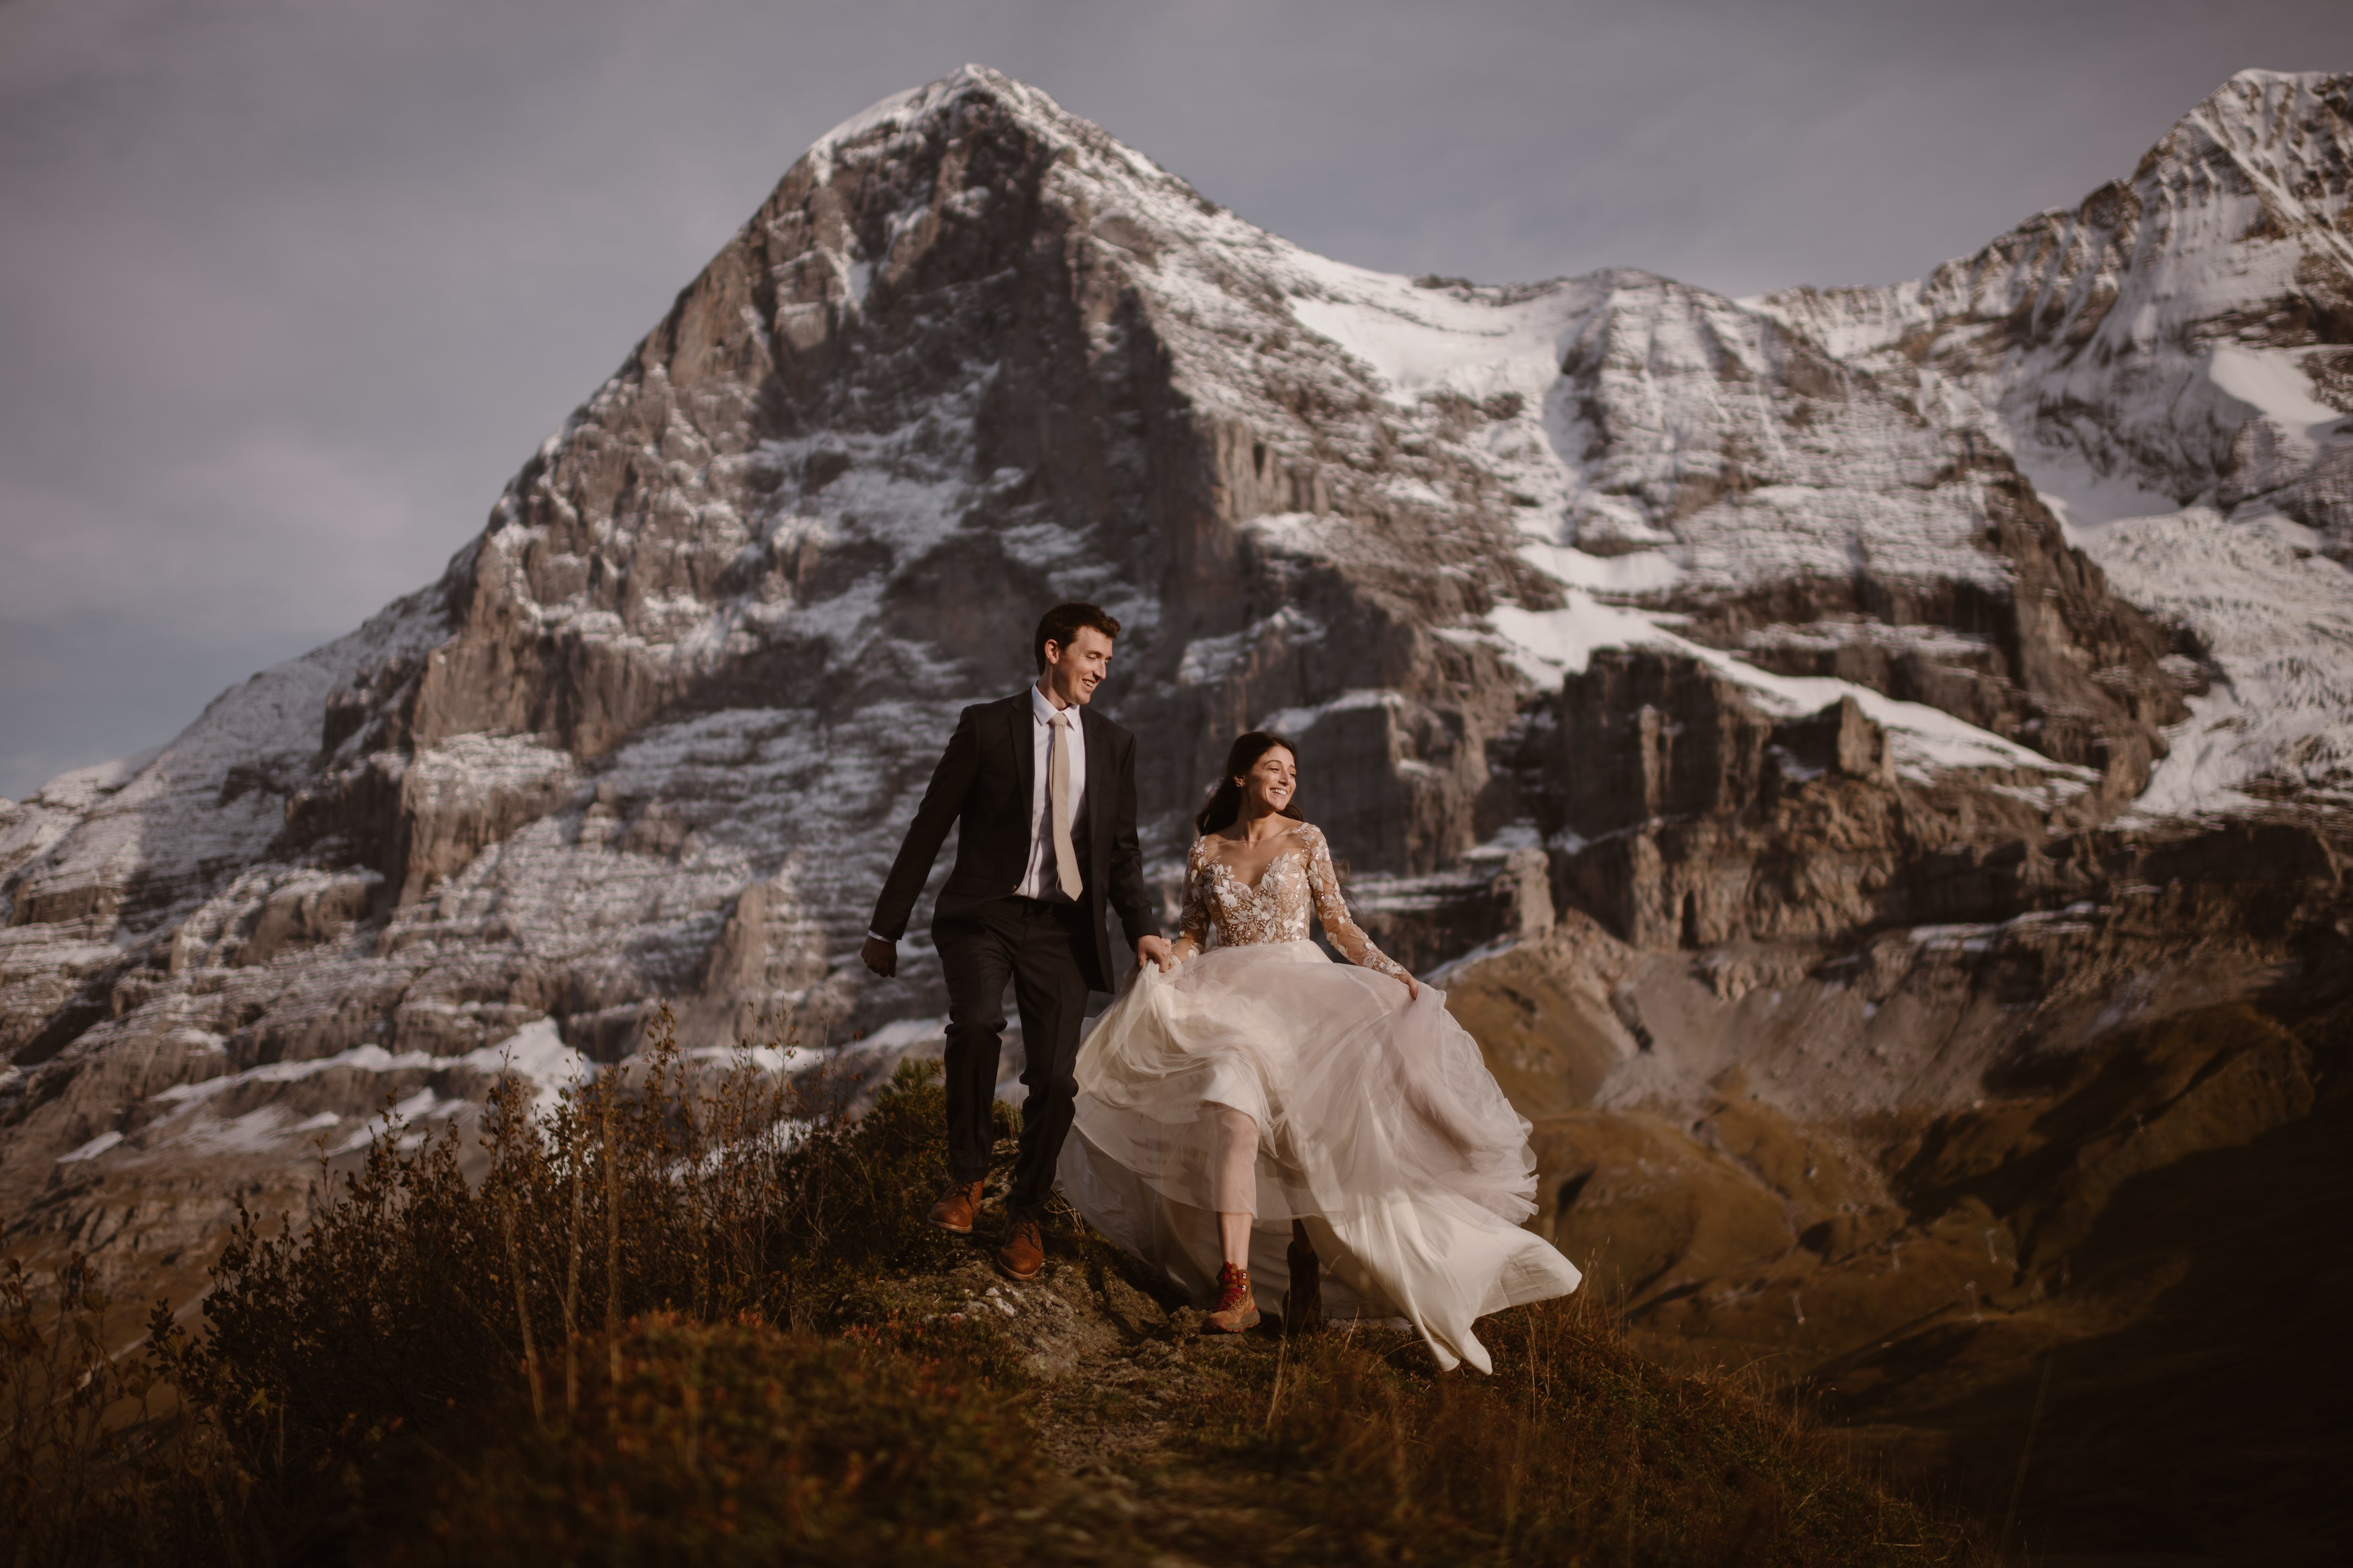 Bride and groom eloping on a mountaintop